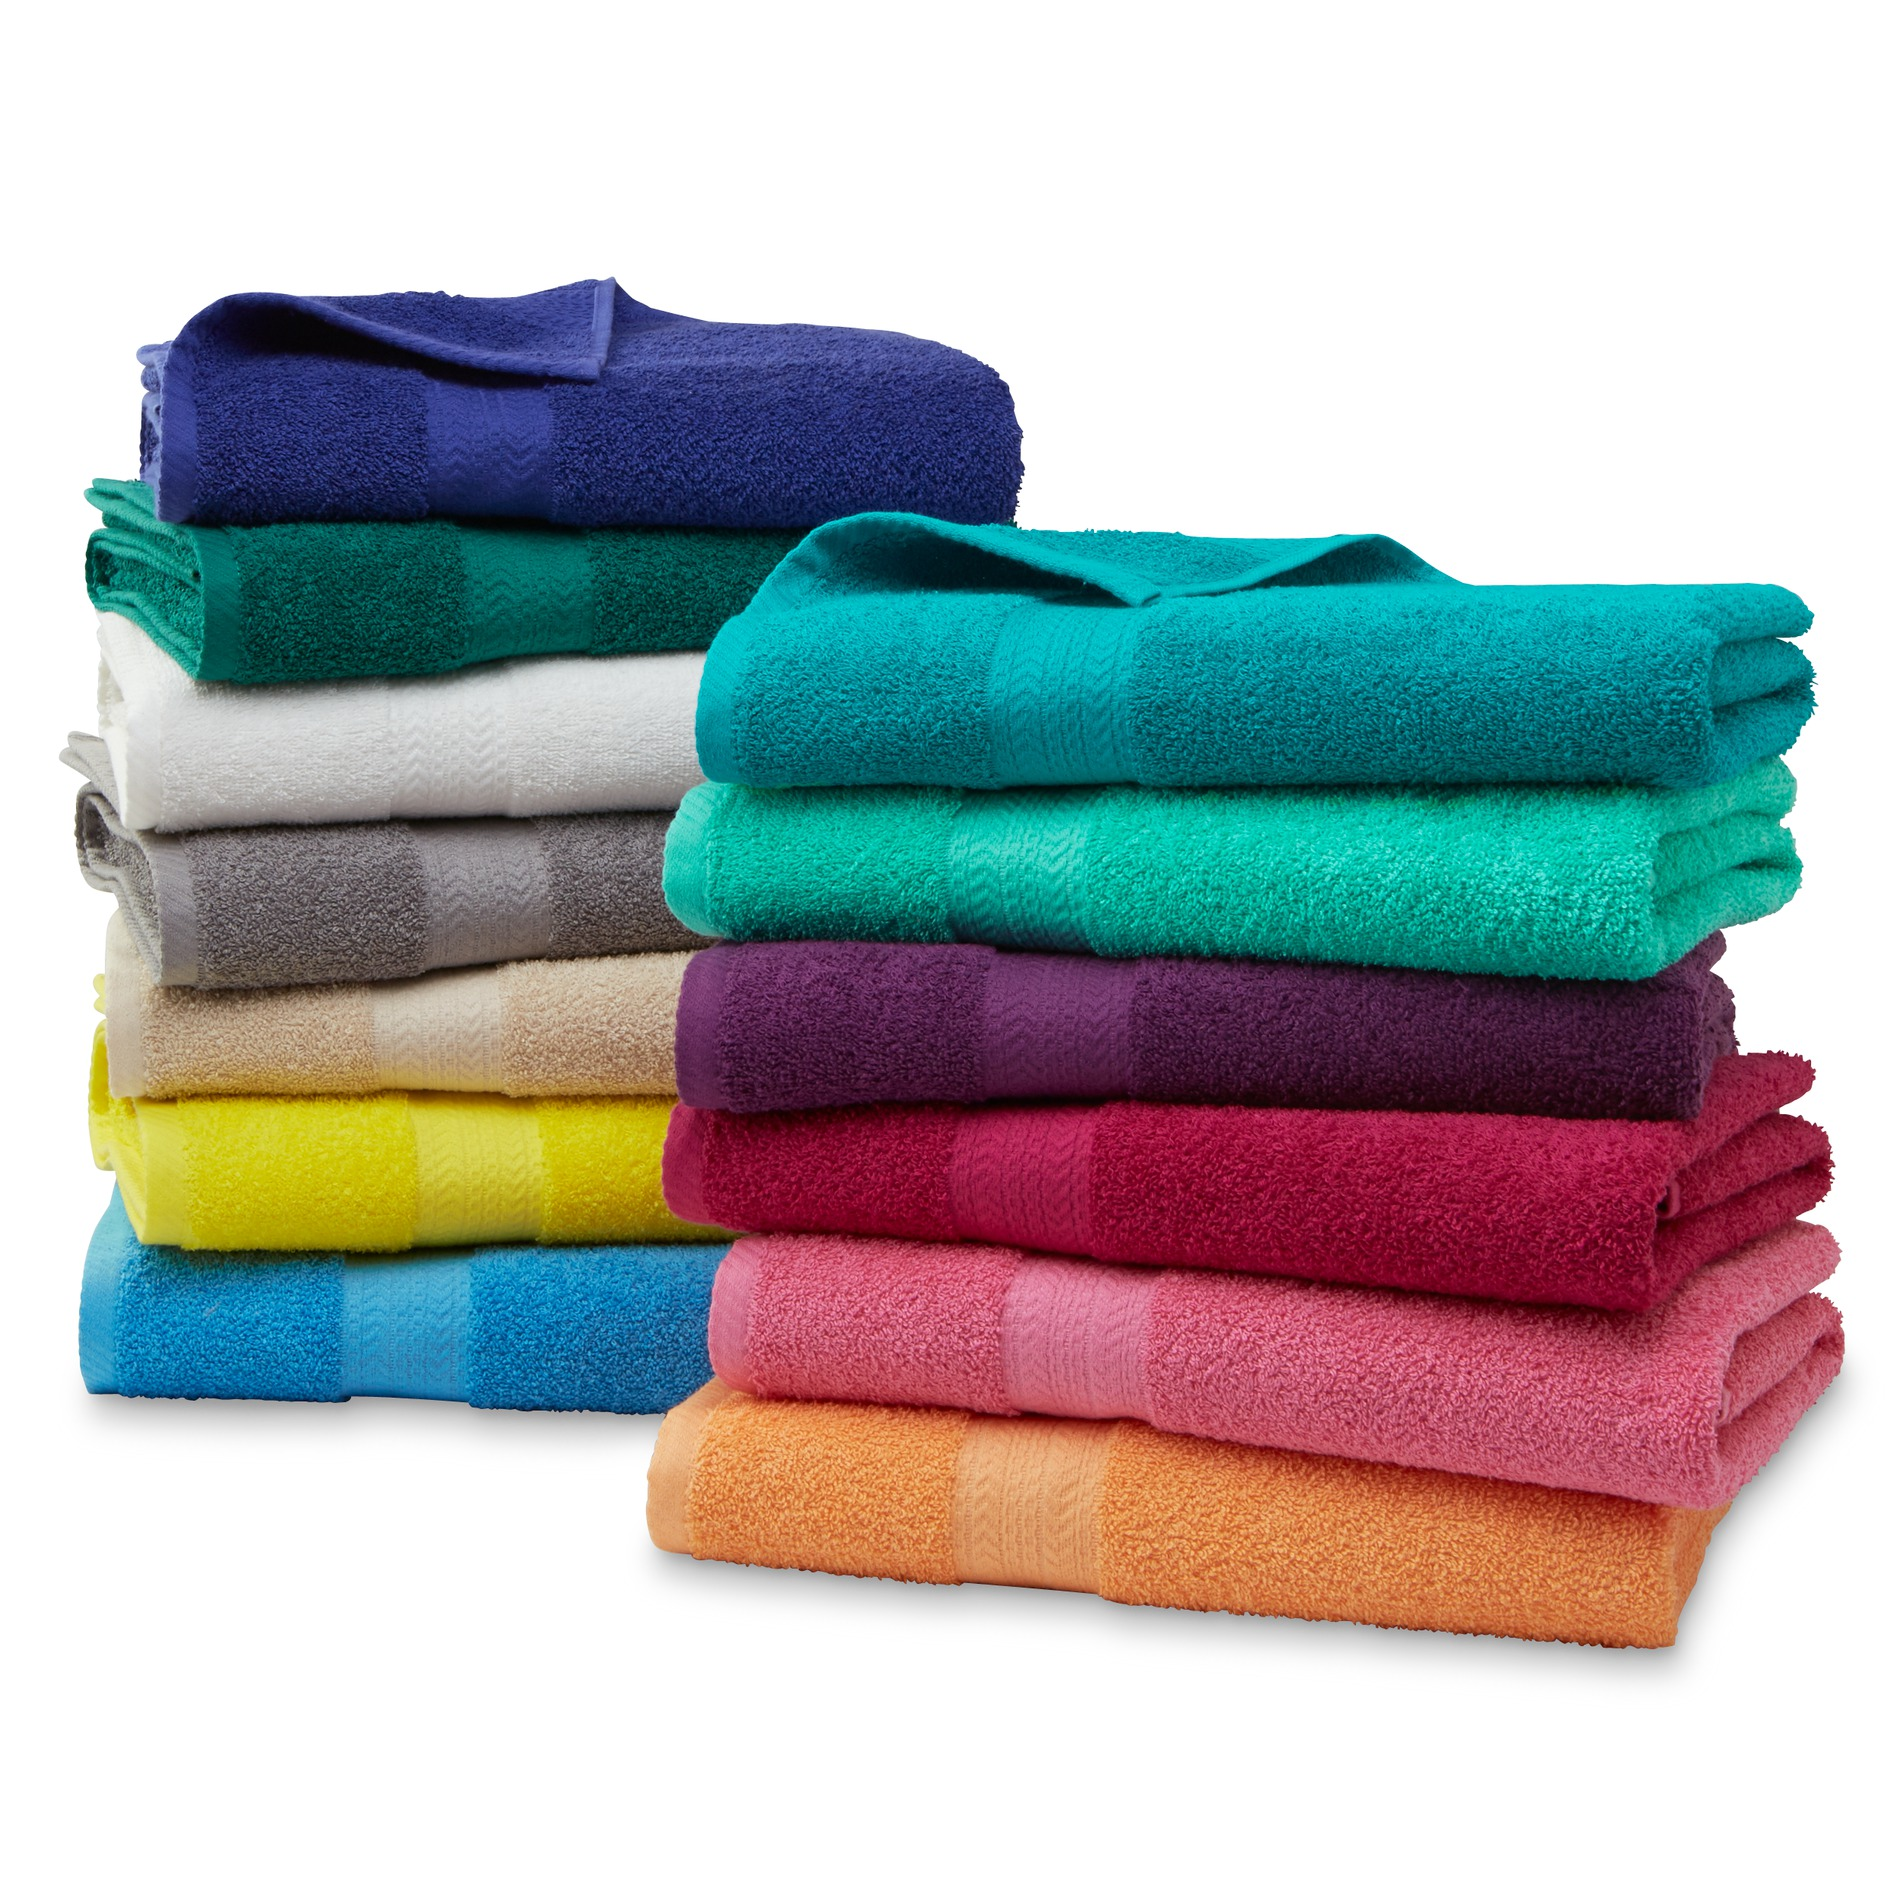 Essential Home Sutton Cotton Bath Towels Hand Washcloths